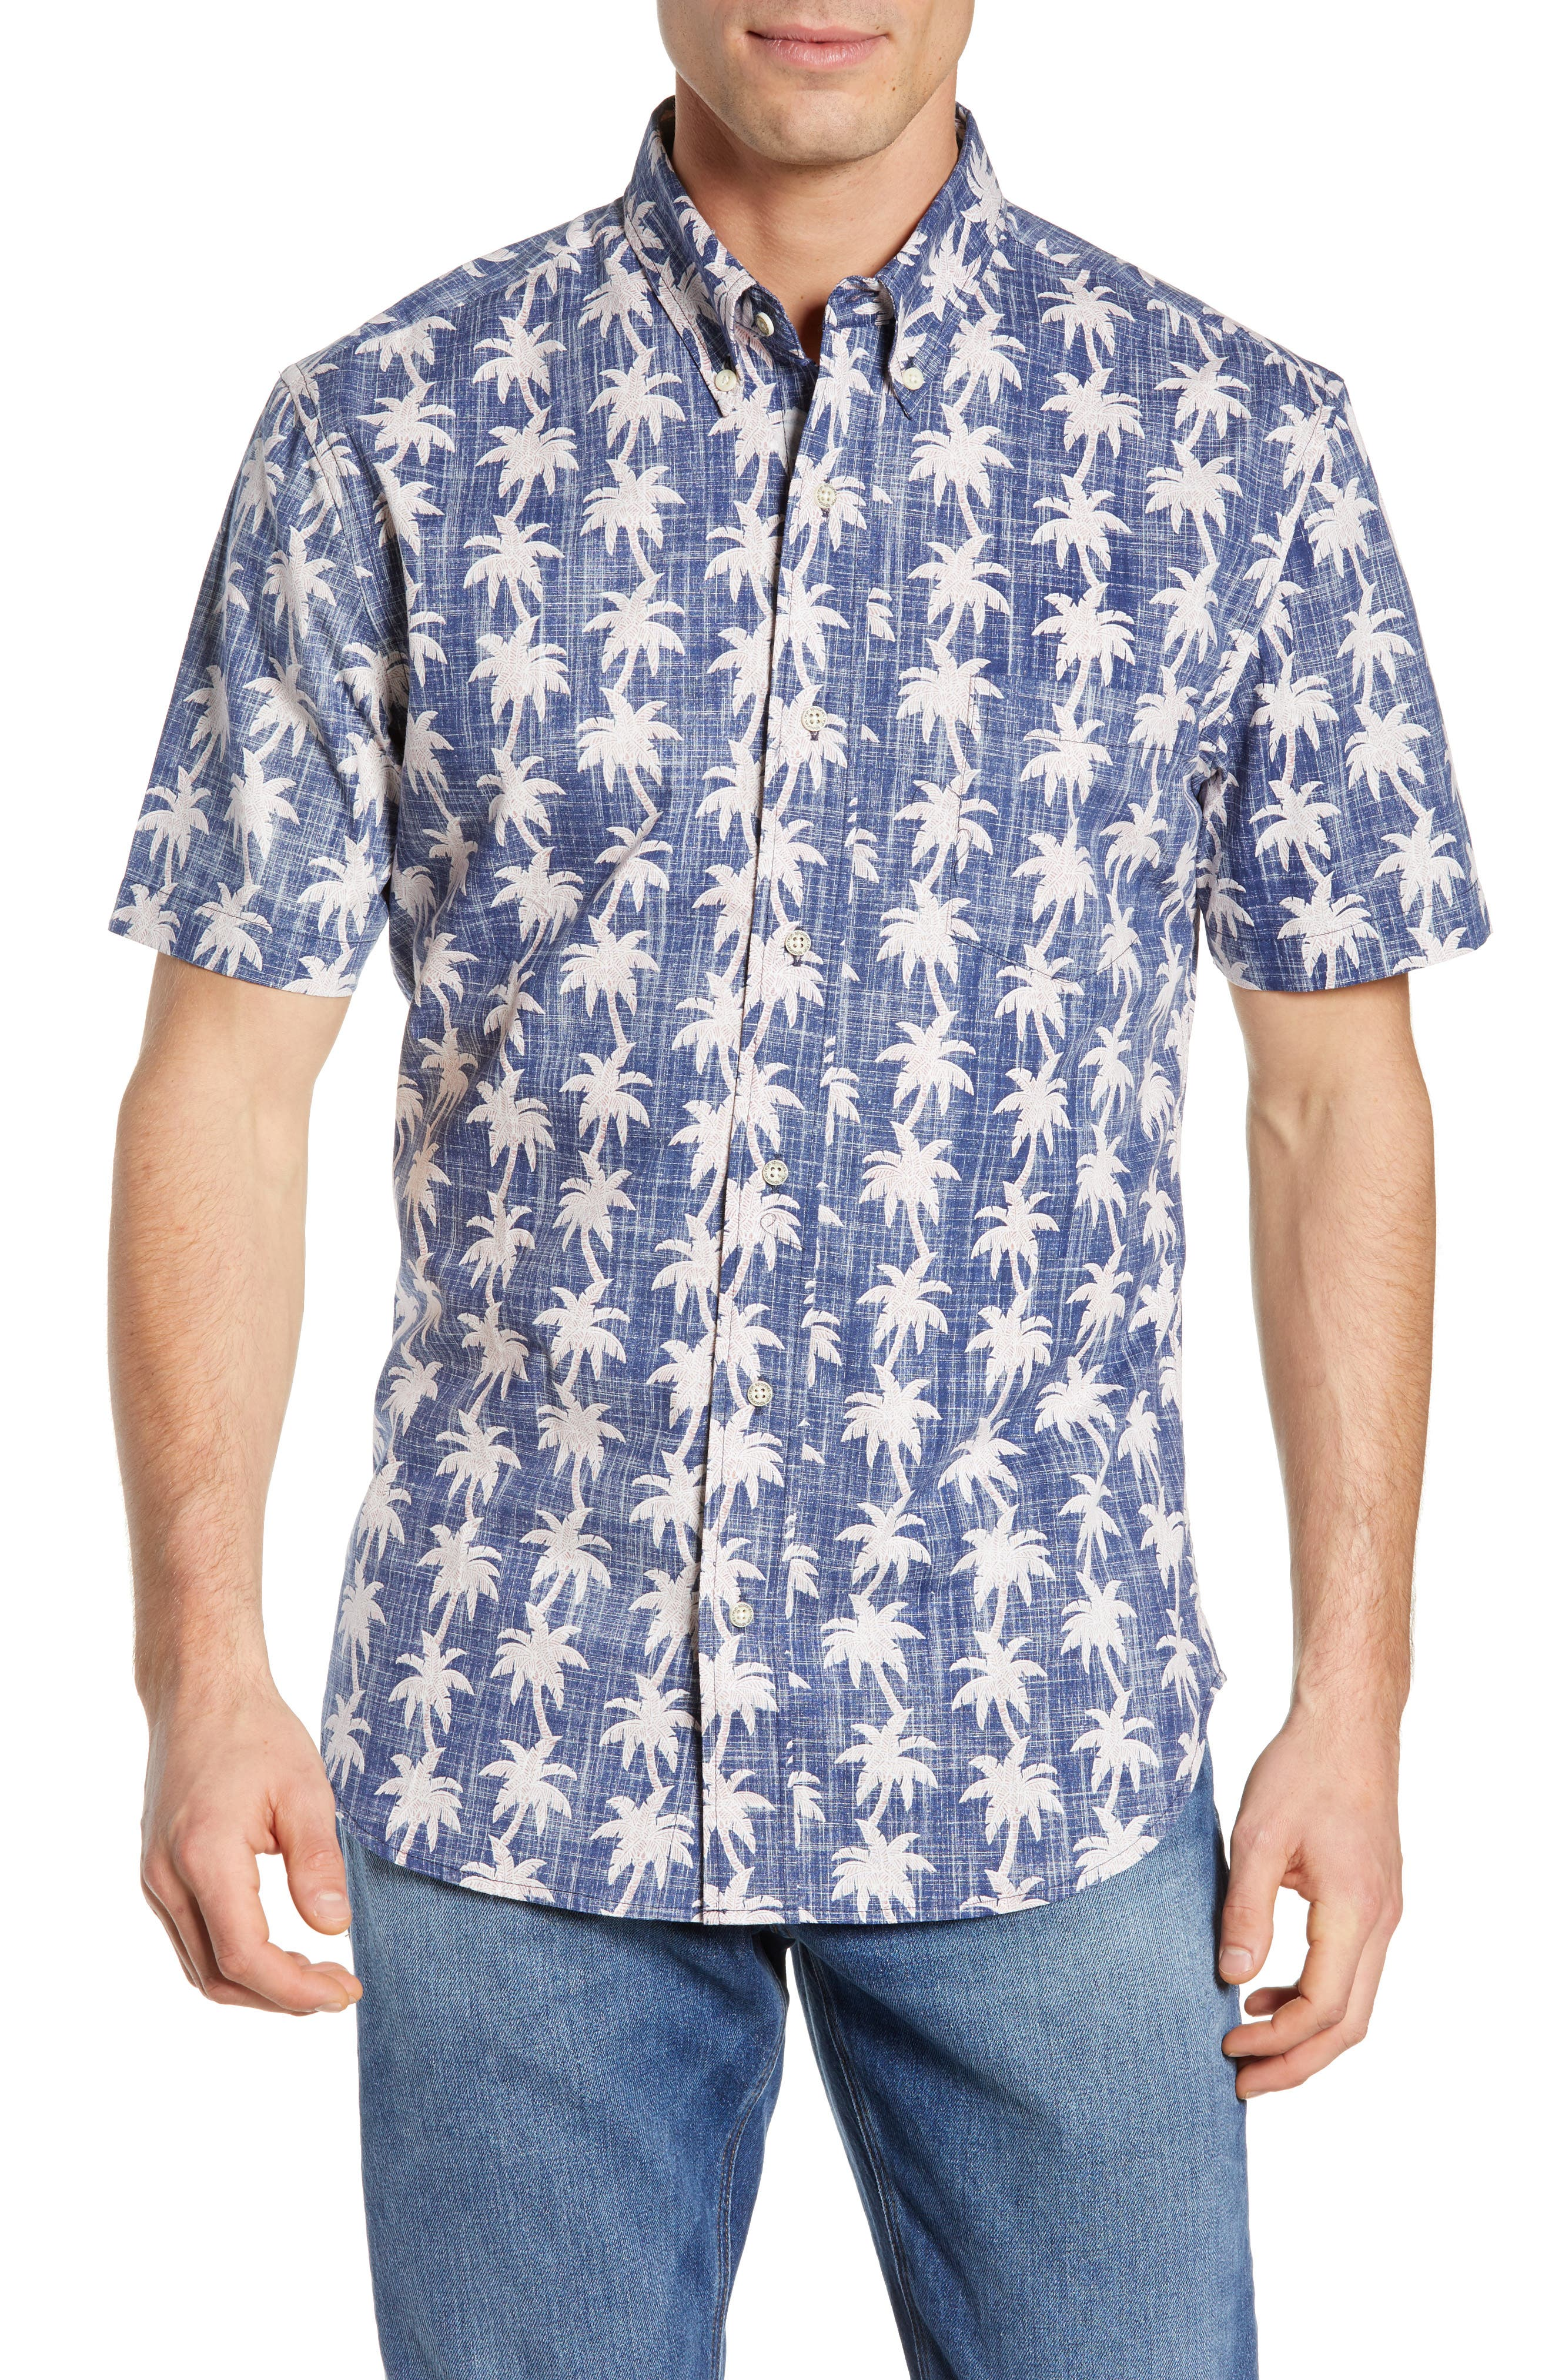 REYN SPOONER My Maui Palm Tailored Fit Sport Shirt, Main, color, MEDIEVAL BLUE